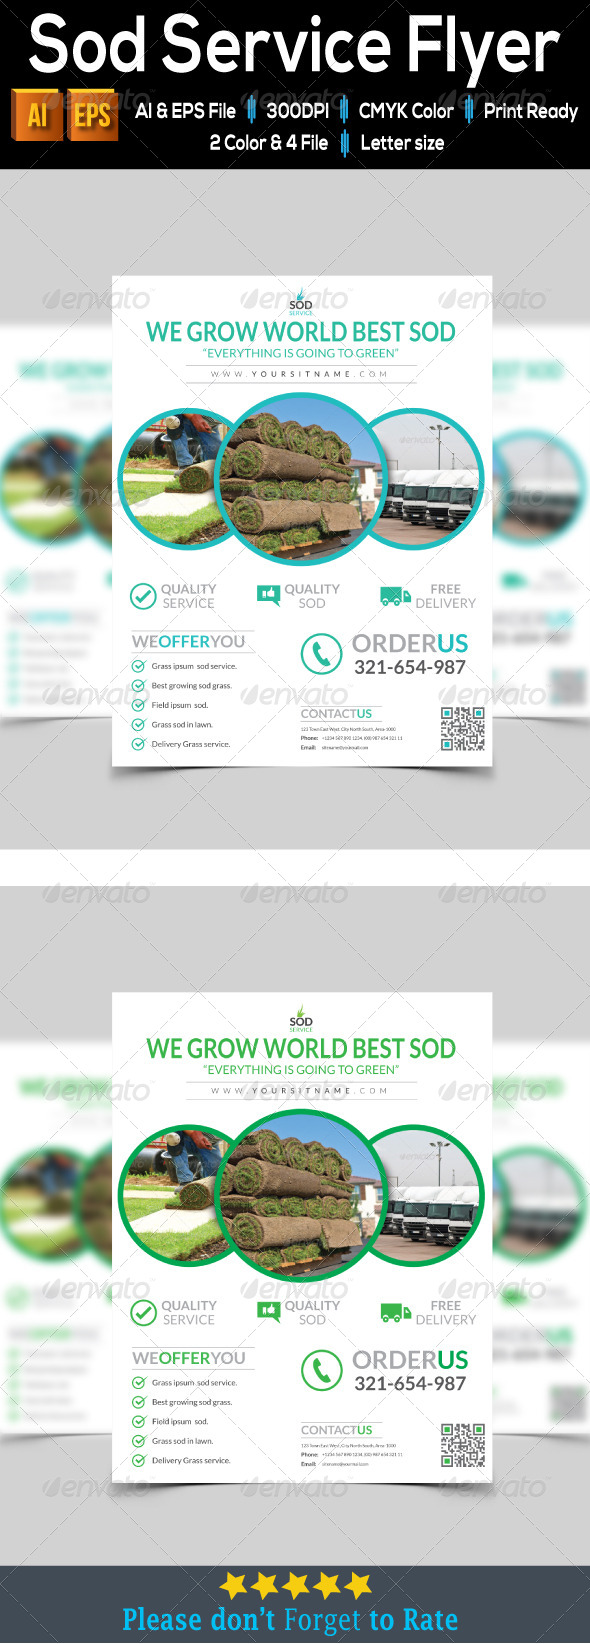 GraphicRiver Sod Service Flyer 7915272